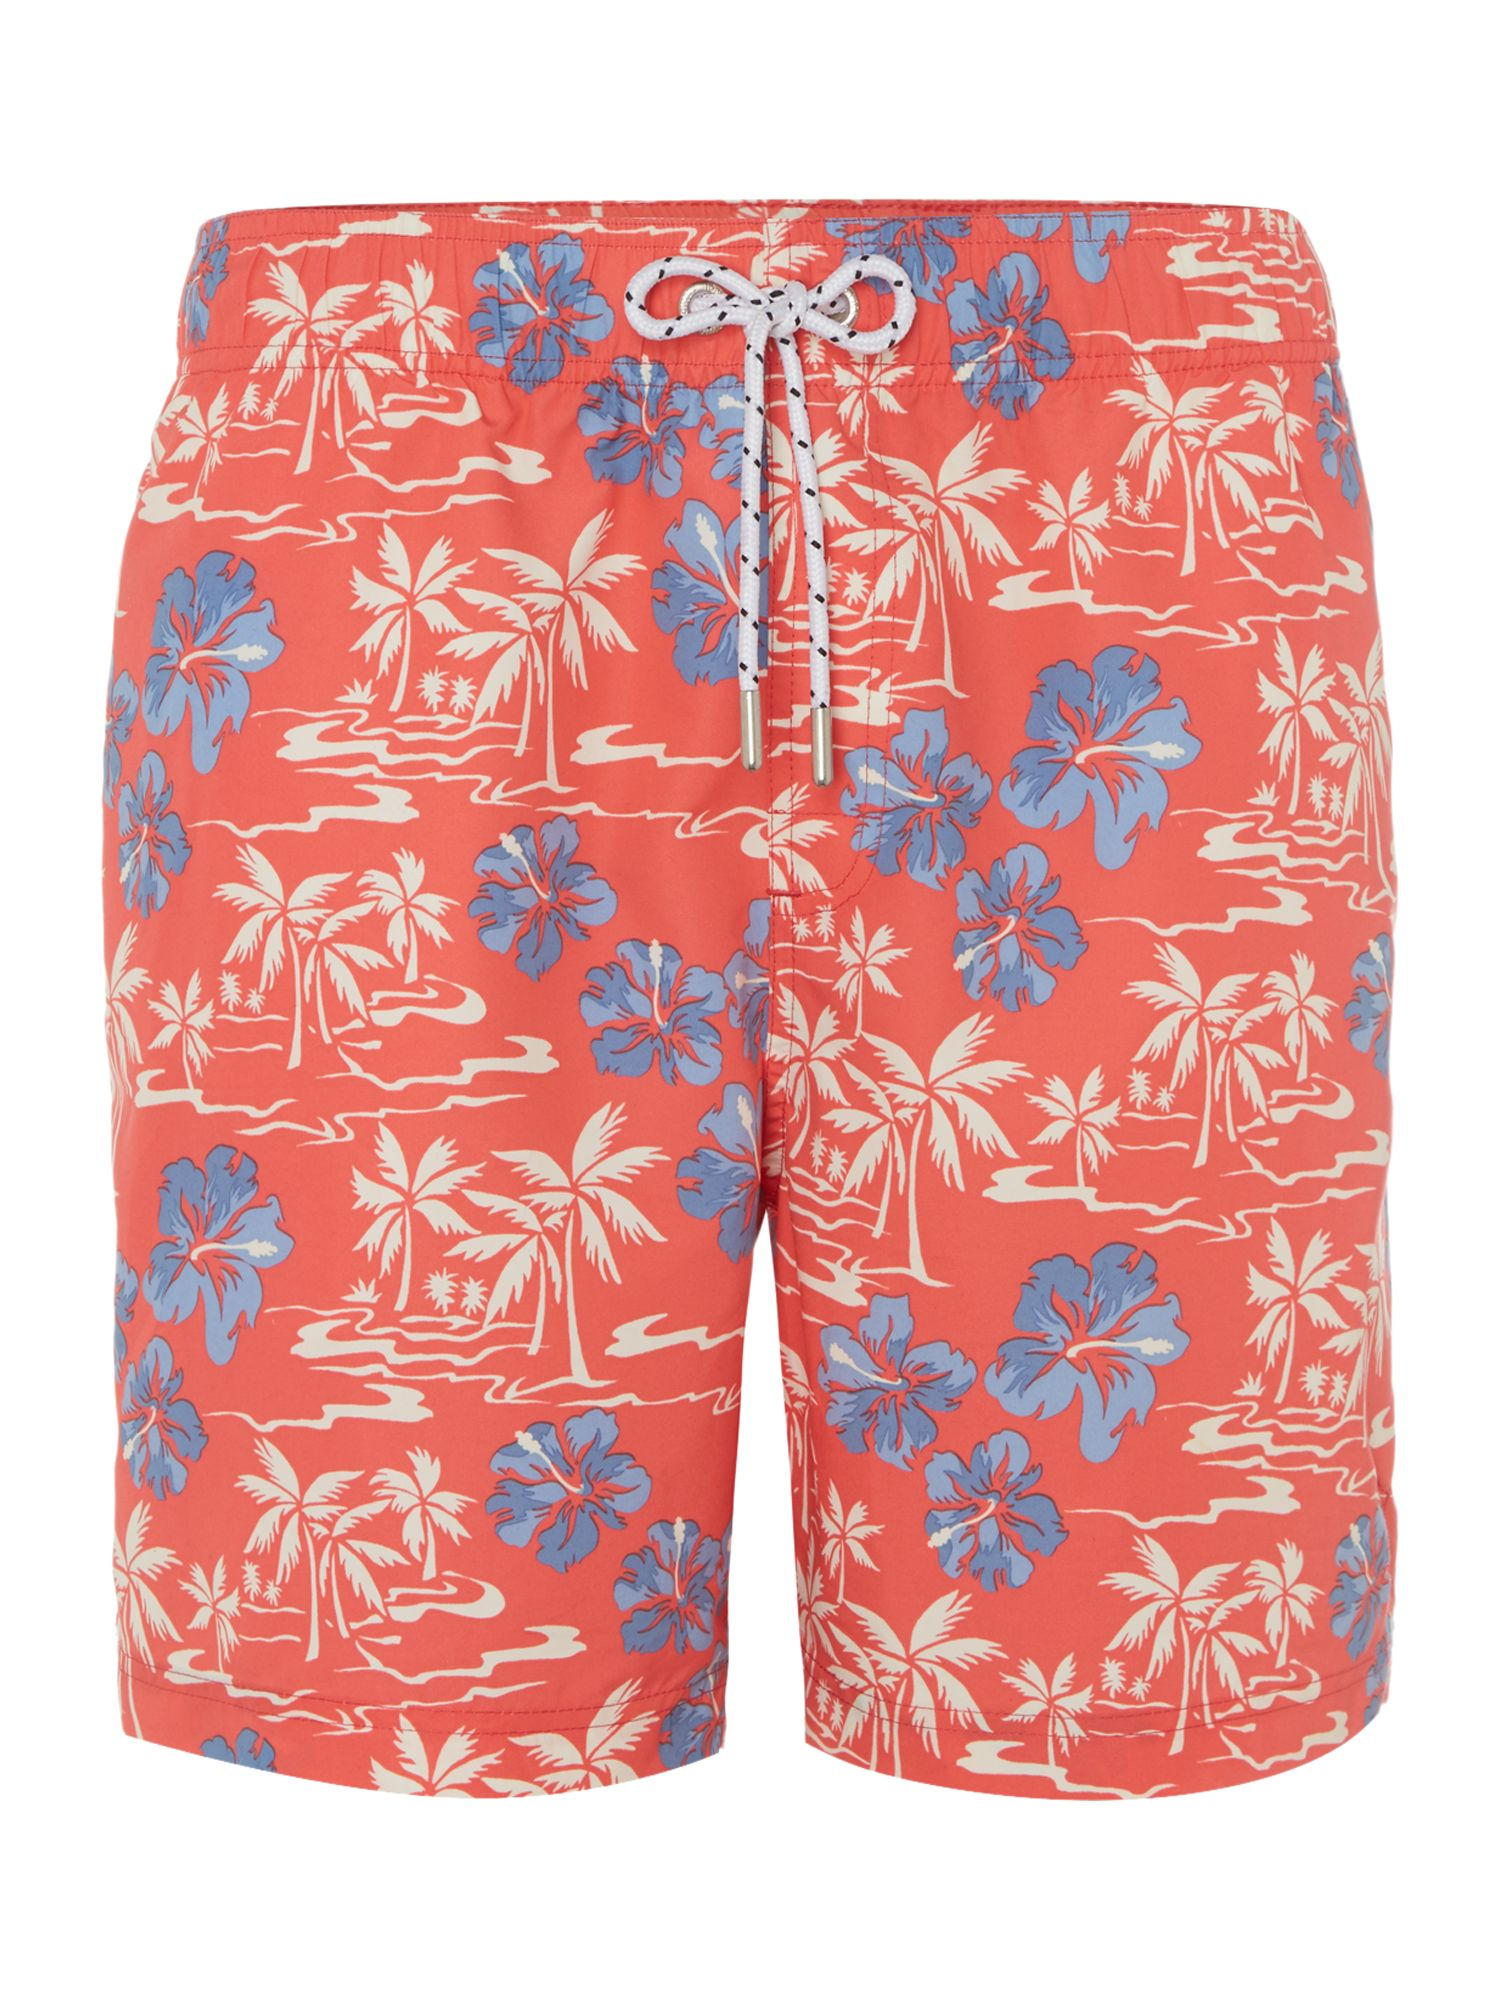 Men's Howick Hawaiian Palm Tree Print Swim Short, Coral